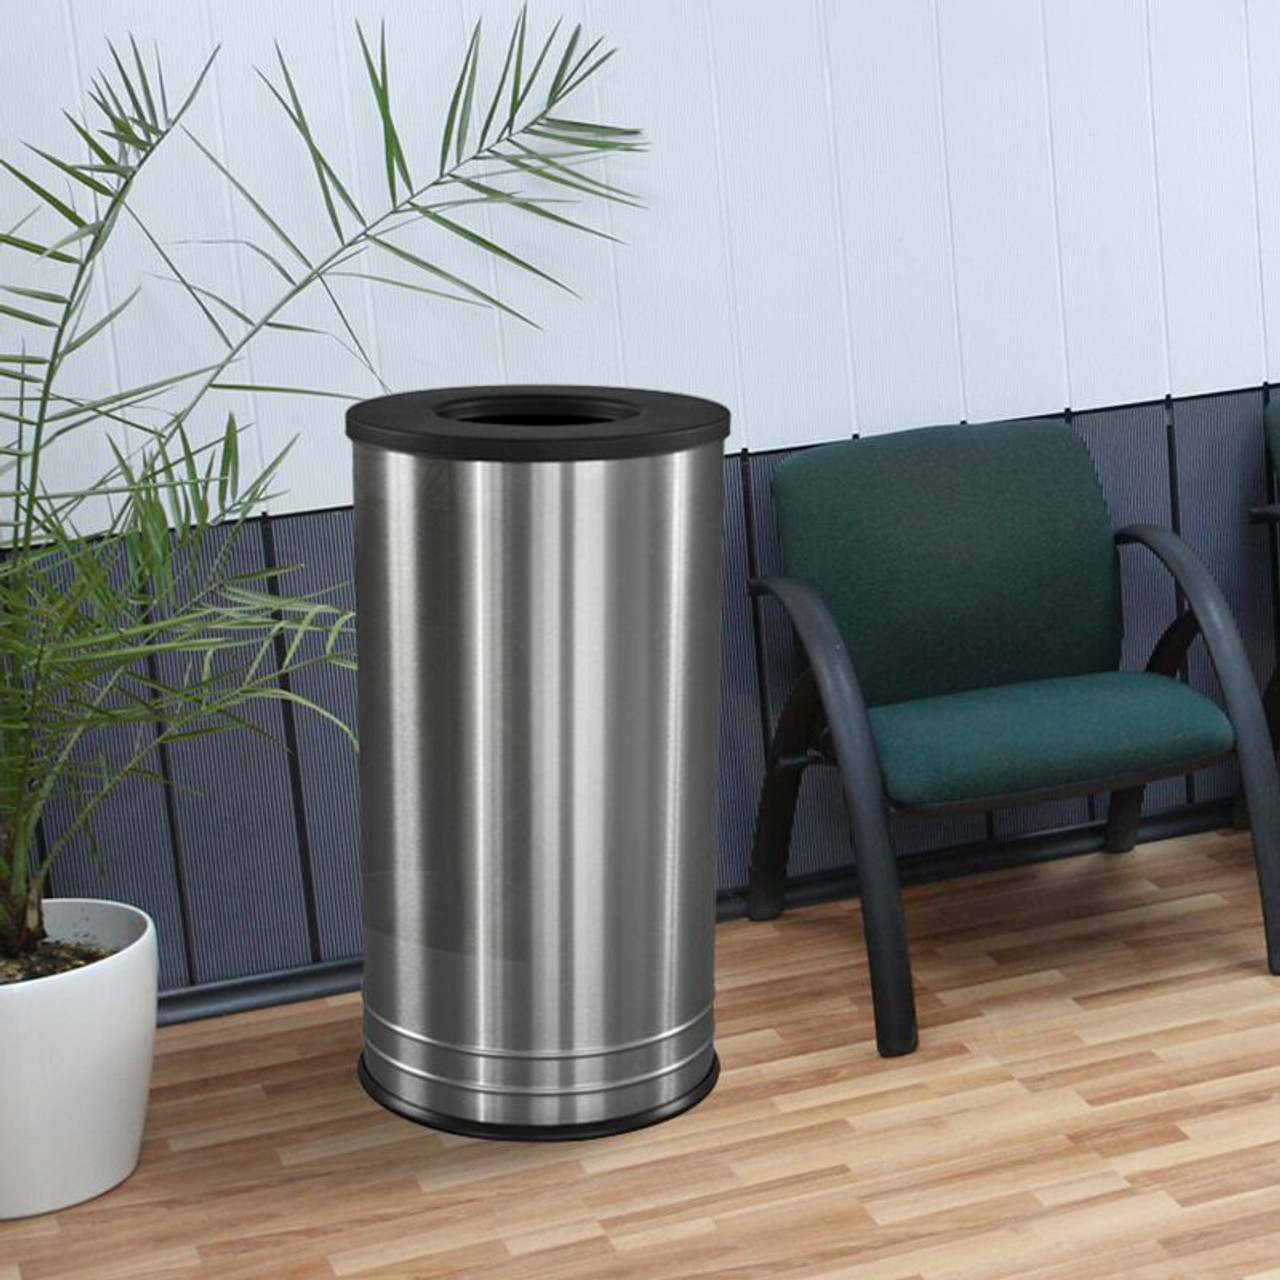 Stainless Steel Trash Can at Office